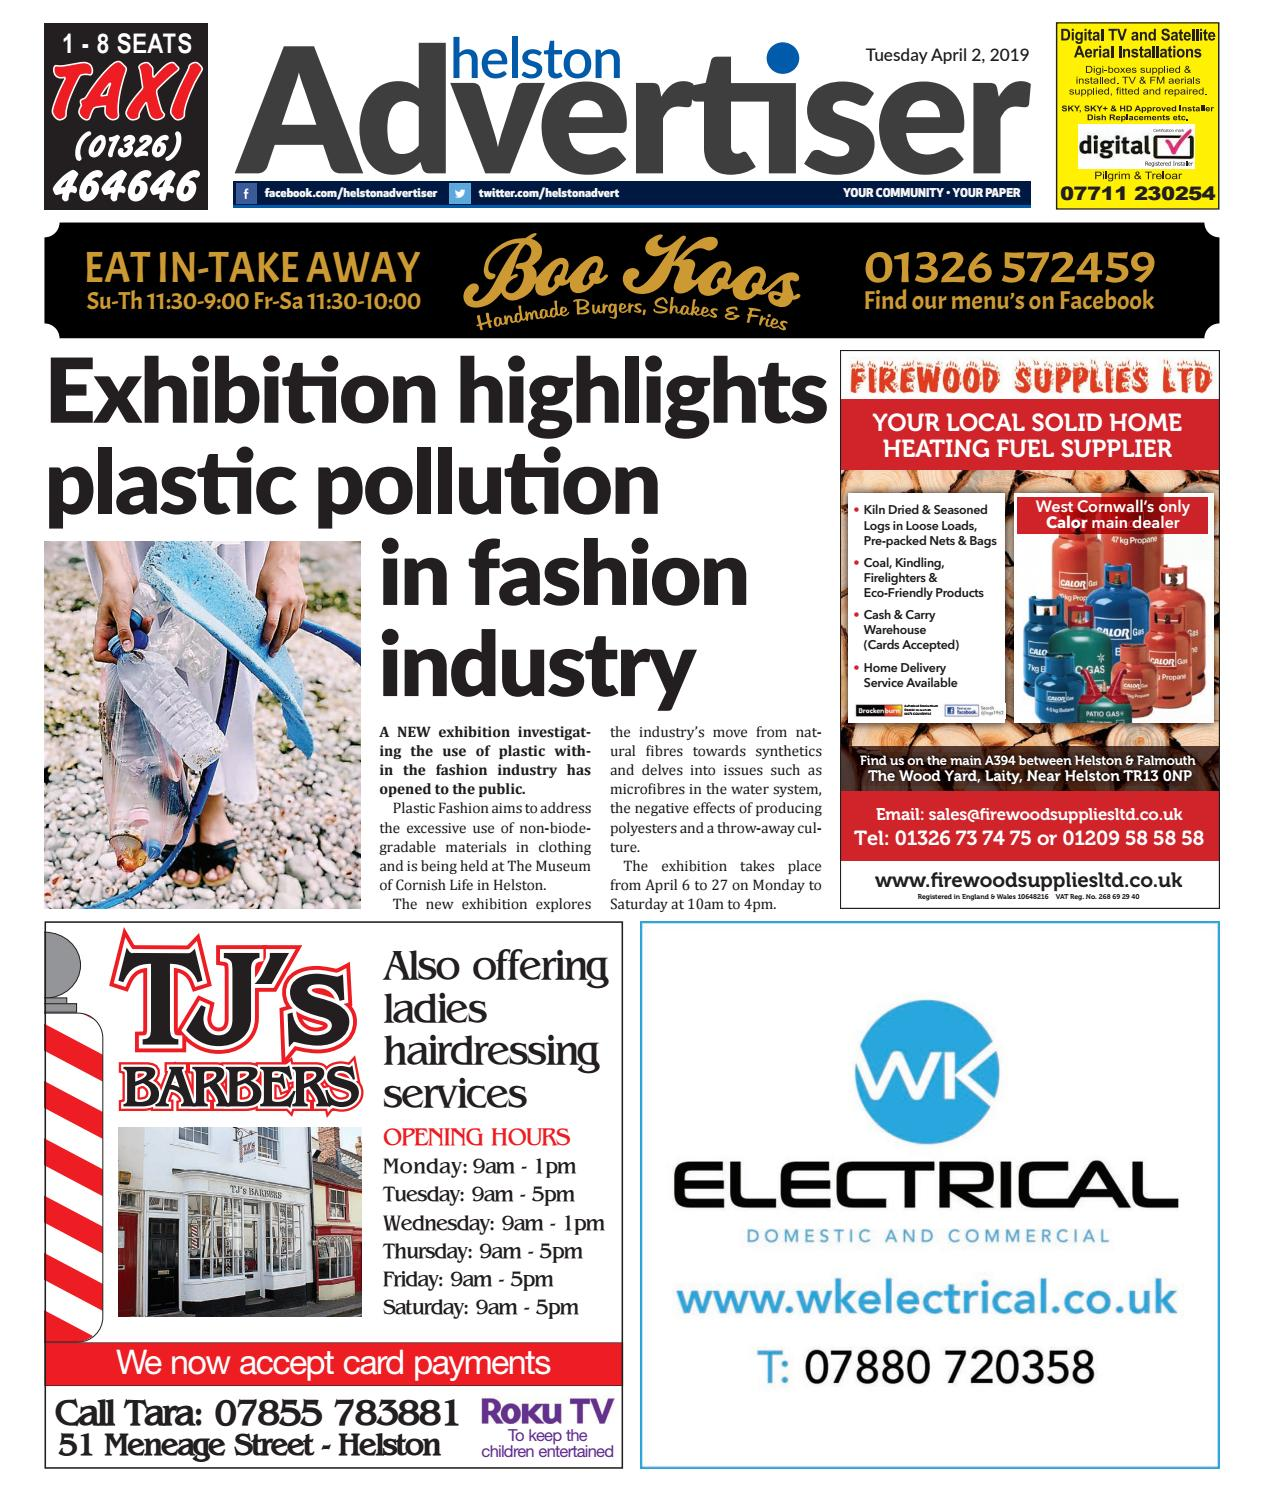 Helston Advertiser - April 2nd 2019 by Helston Advertiser